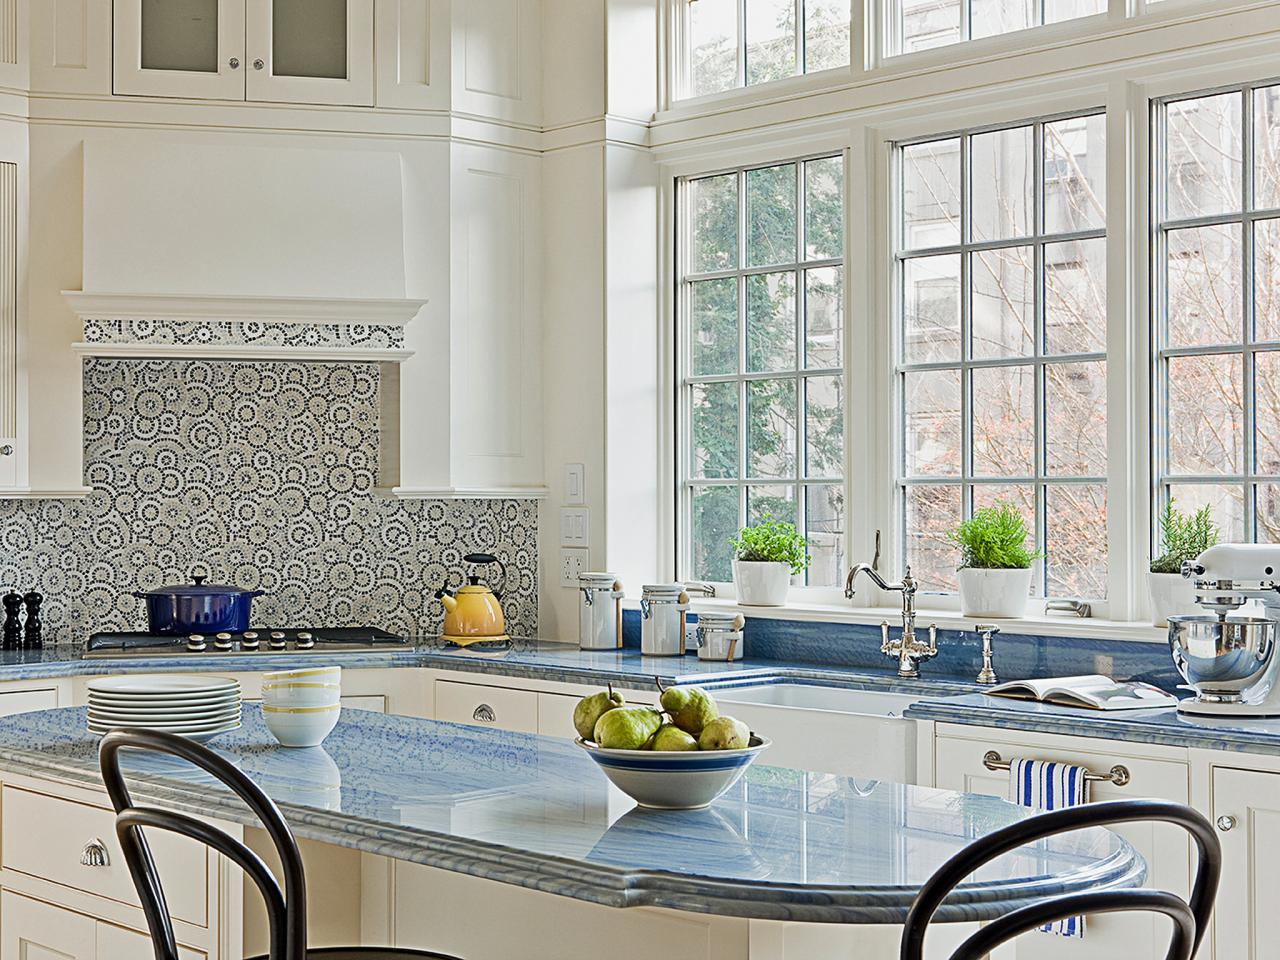 White Cabinets_Blue Tile Backsplash